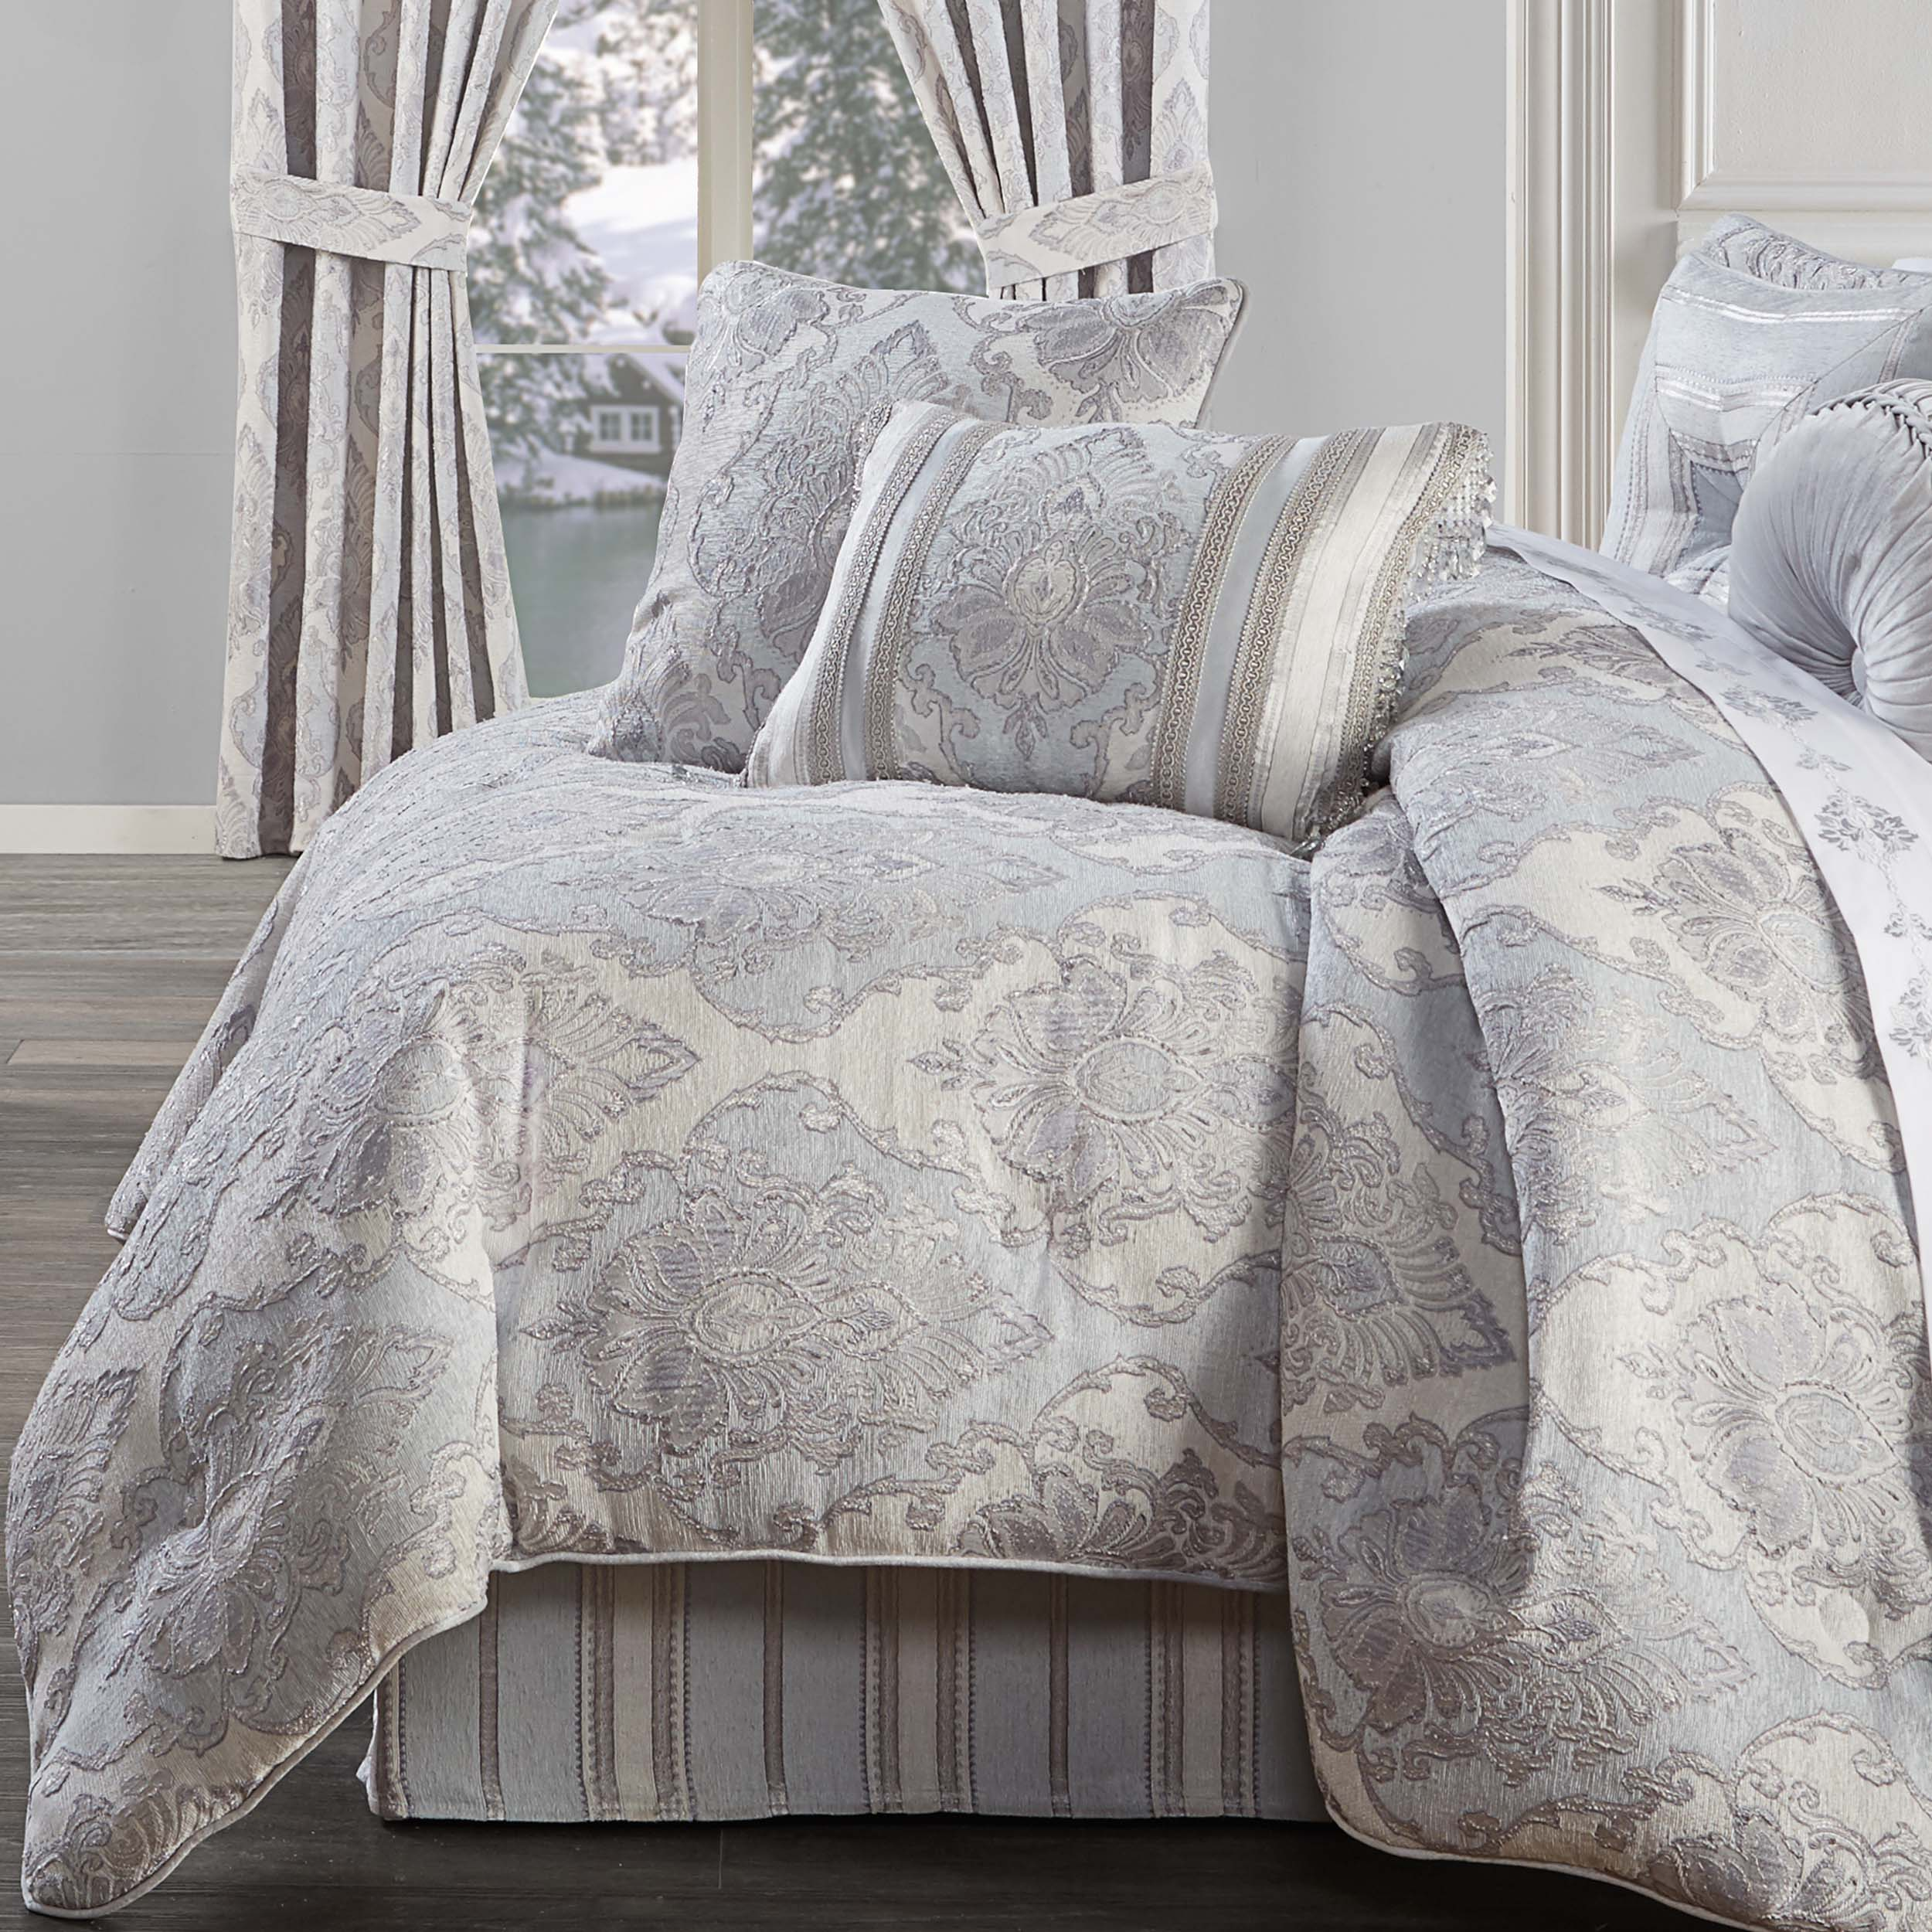 Iceland Powder Blue 4-Piece Comforter Set [Luxury comforter Sets] [by Latest Bedding]